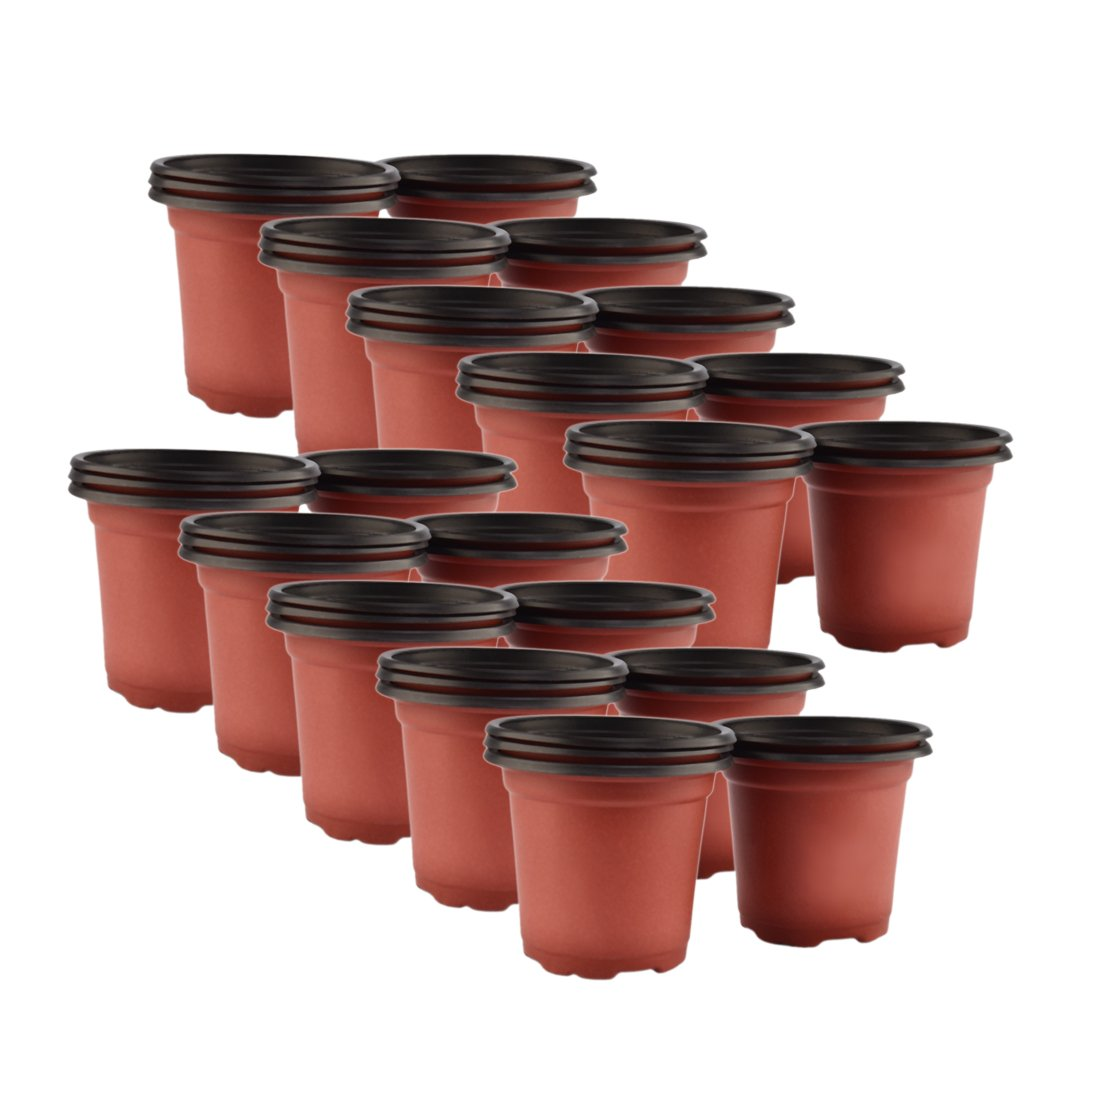 FenglinTech 50PCS 7.09'' Planter Nursery Pots Seedlings Flower Plant Container Seed Starting Pots by FenglinTech